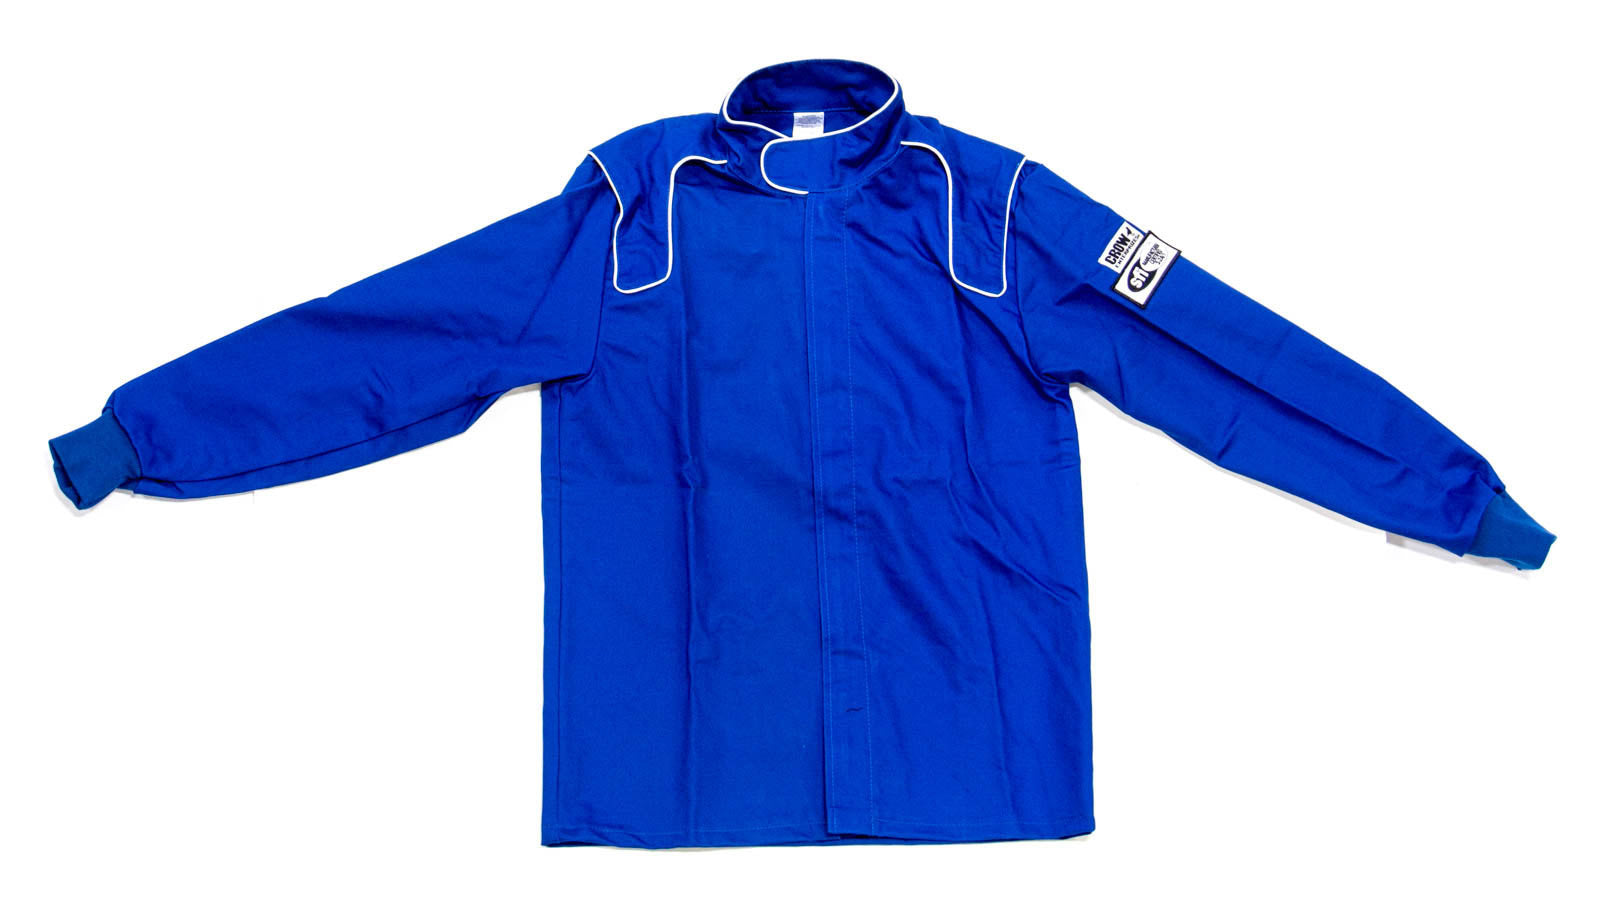 Jacket 1-Layer Proban Blue Small - Safety Equipment